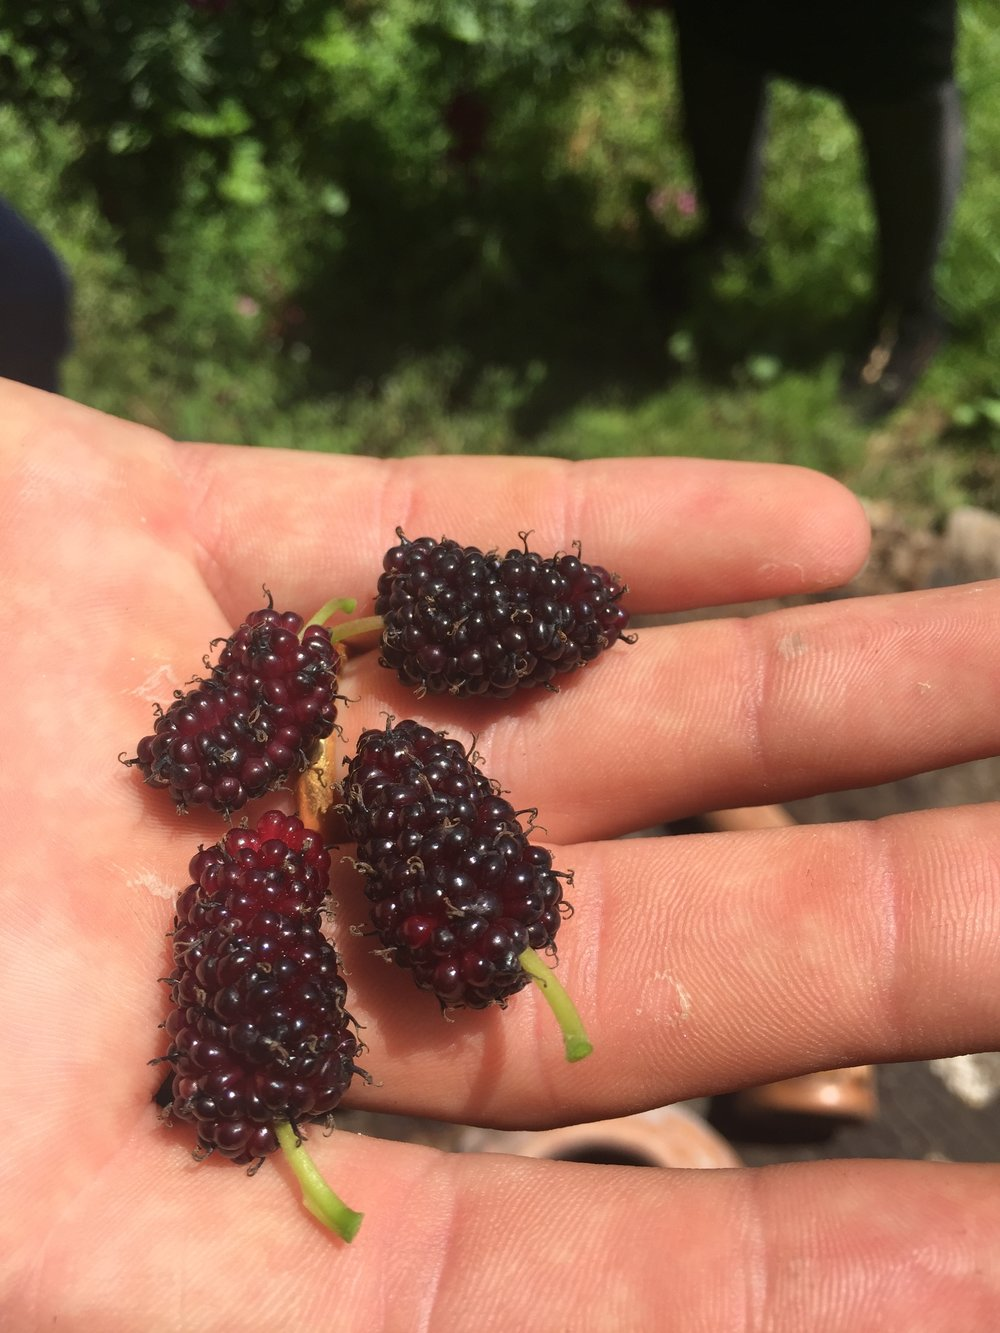 Black Mulberries in Georgia